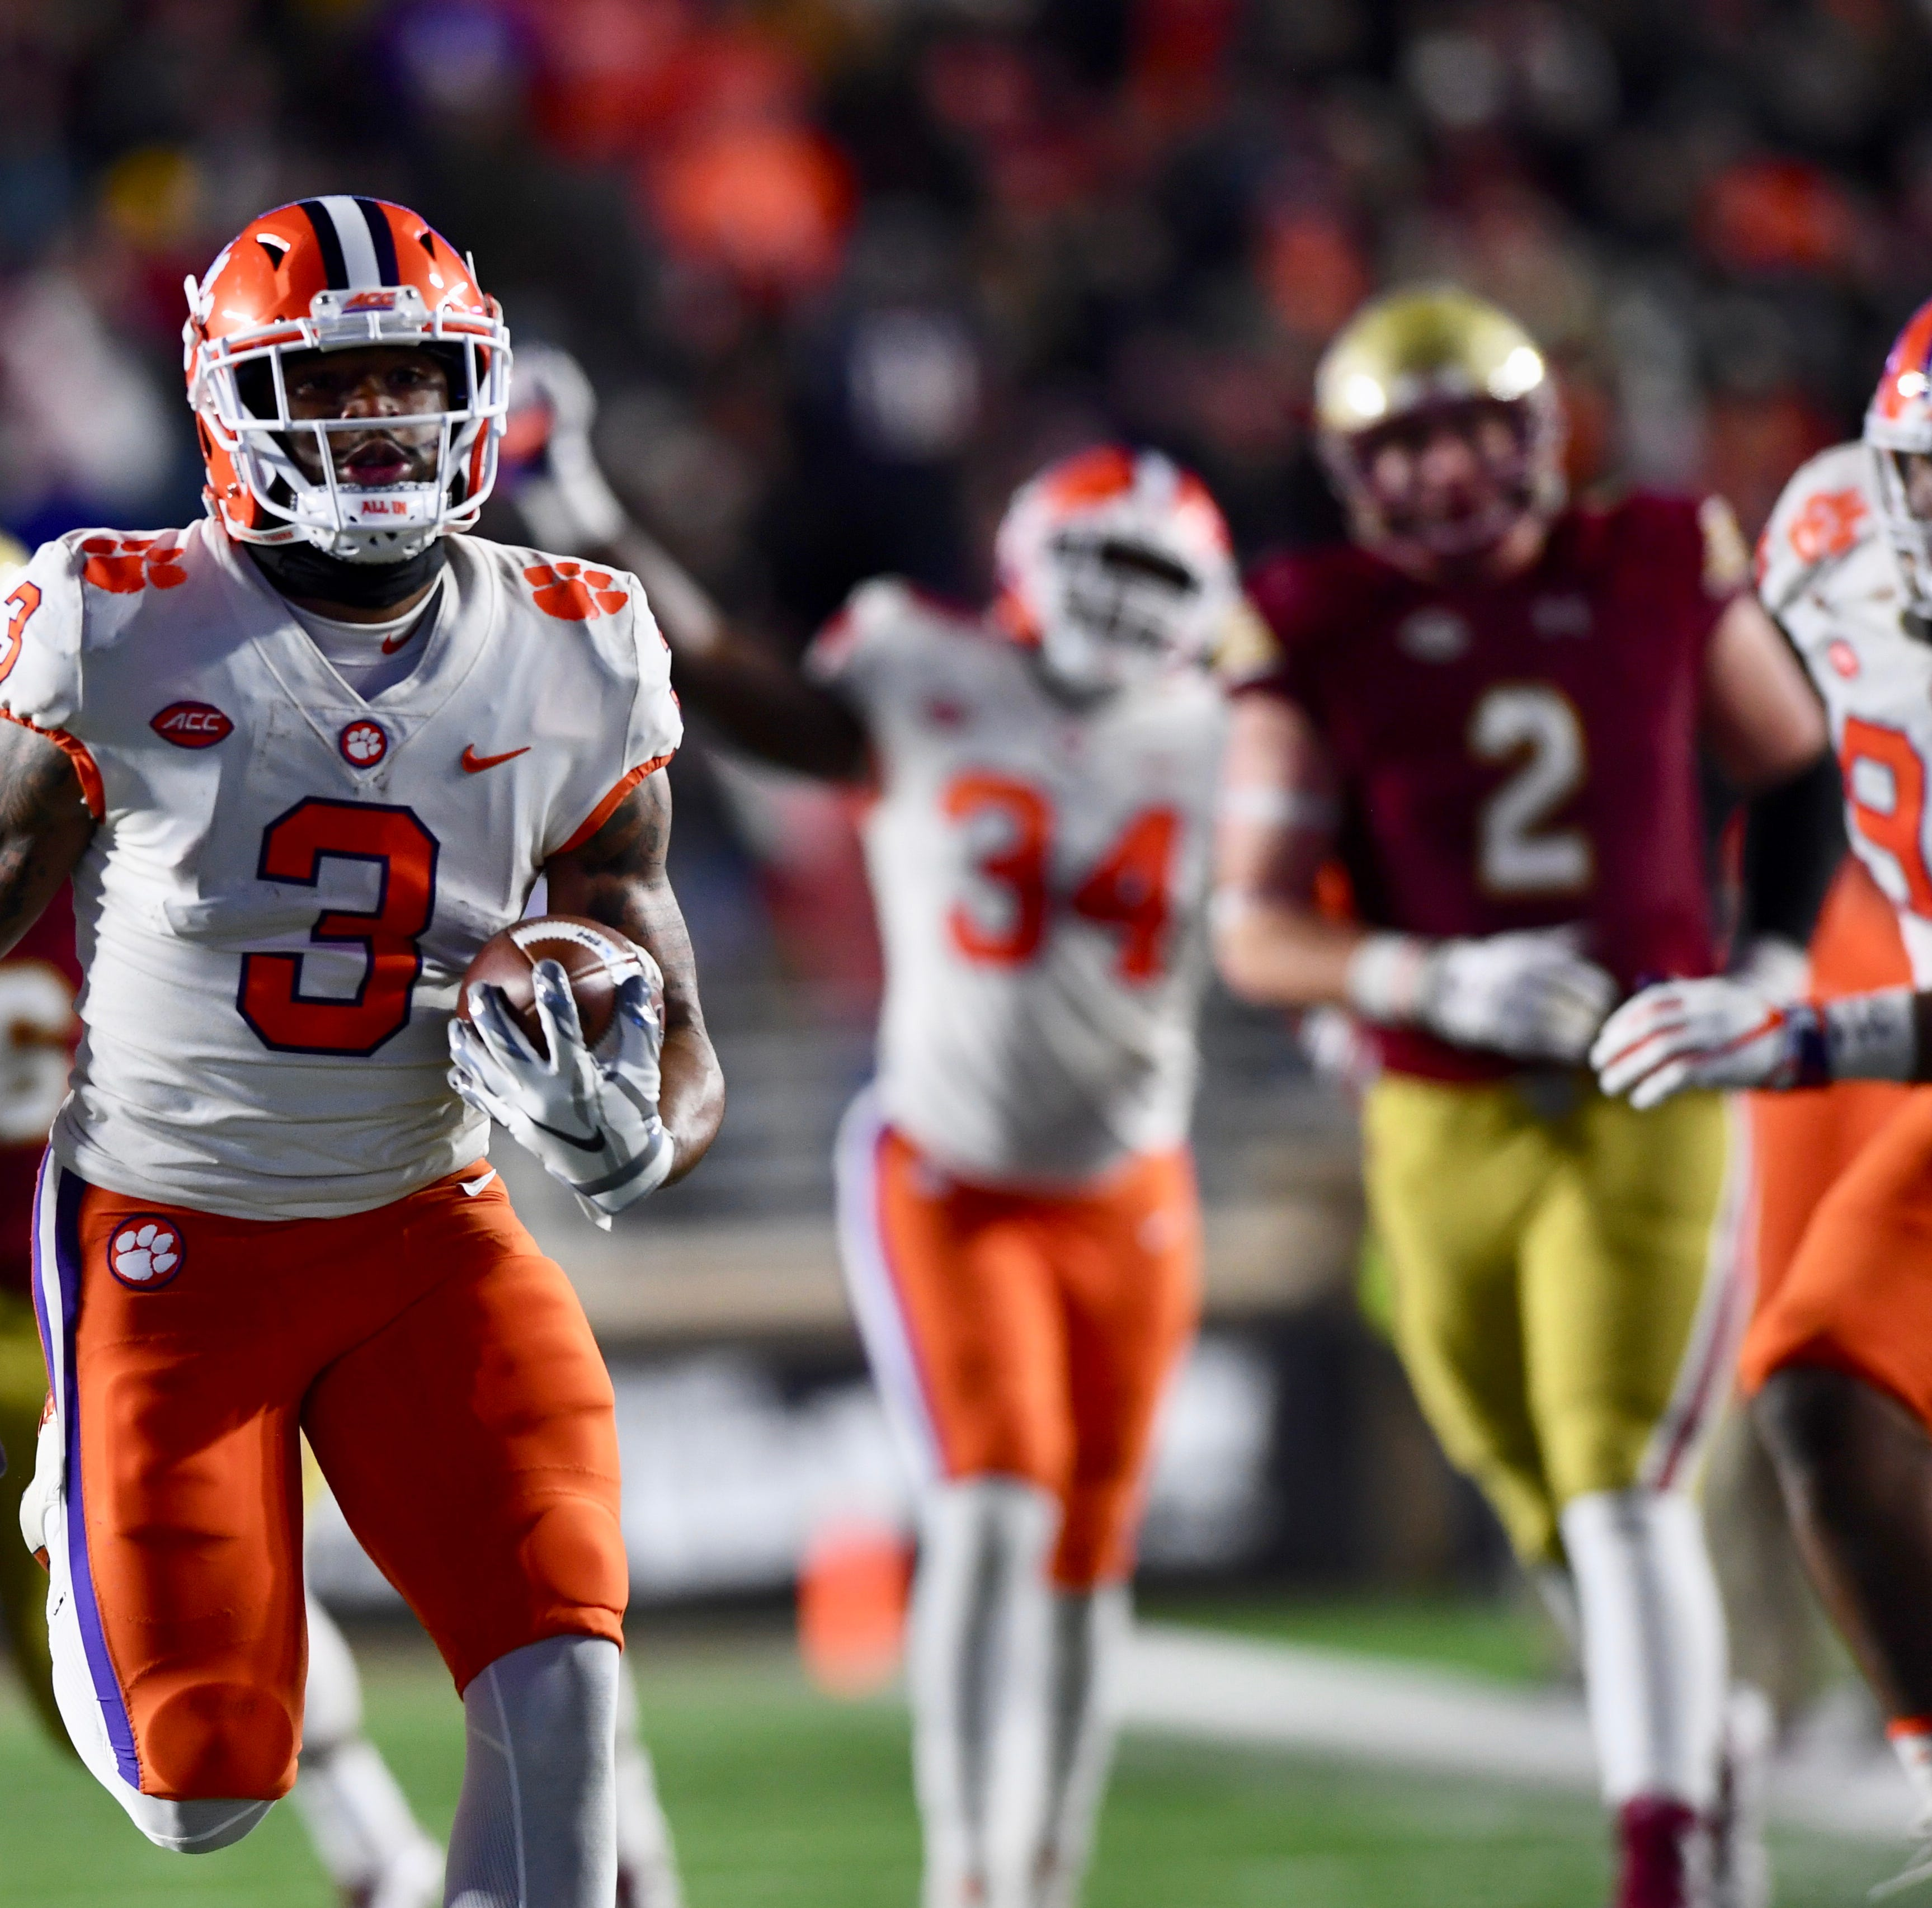 Live updates: Clemson Tigers face off against Boston College Eagles in ACC play